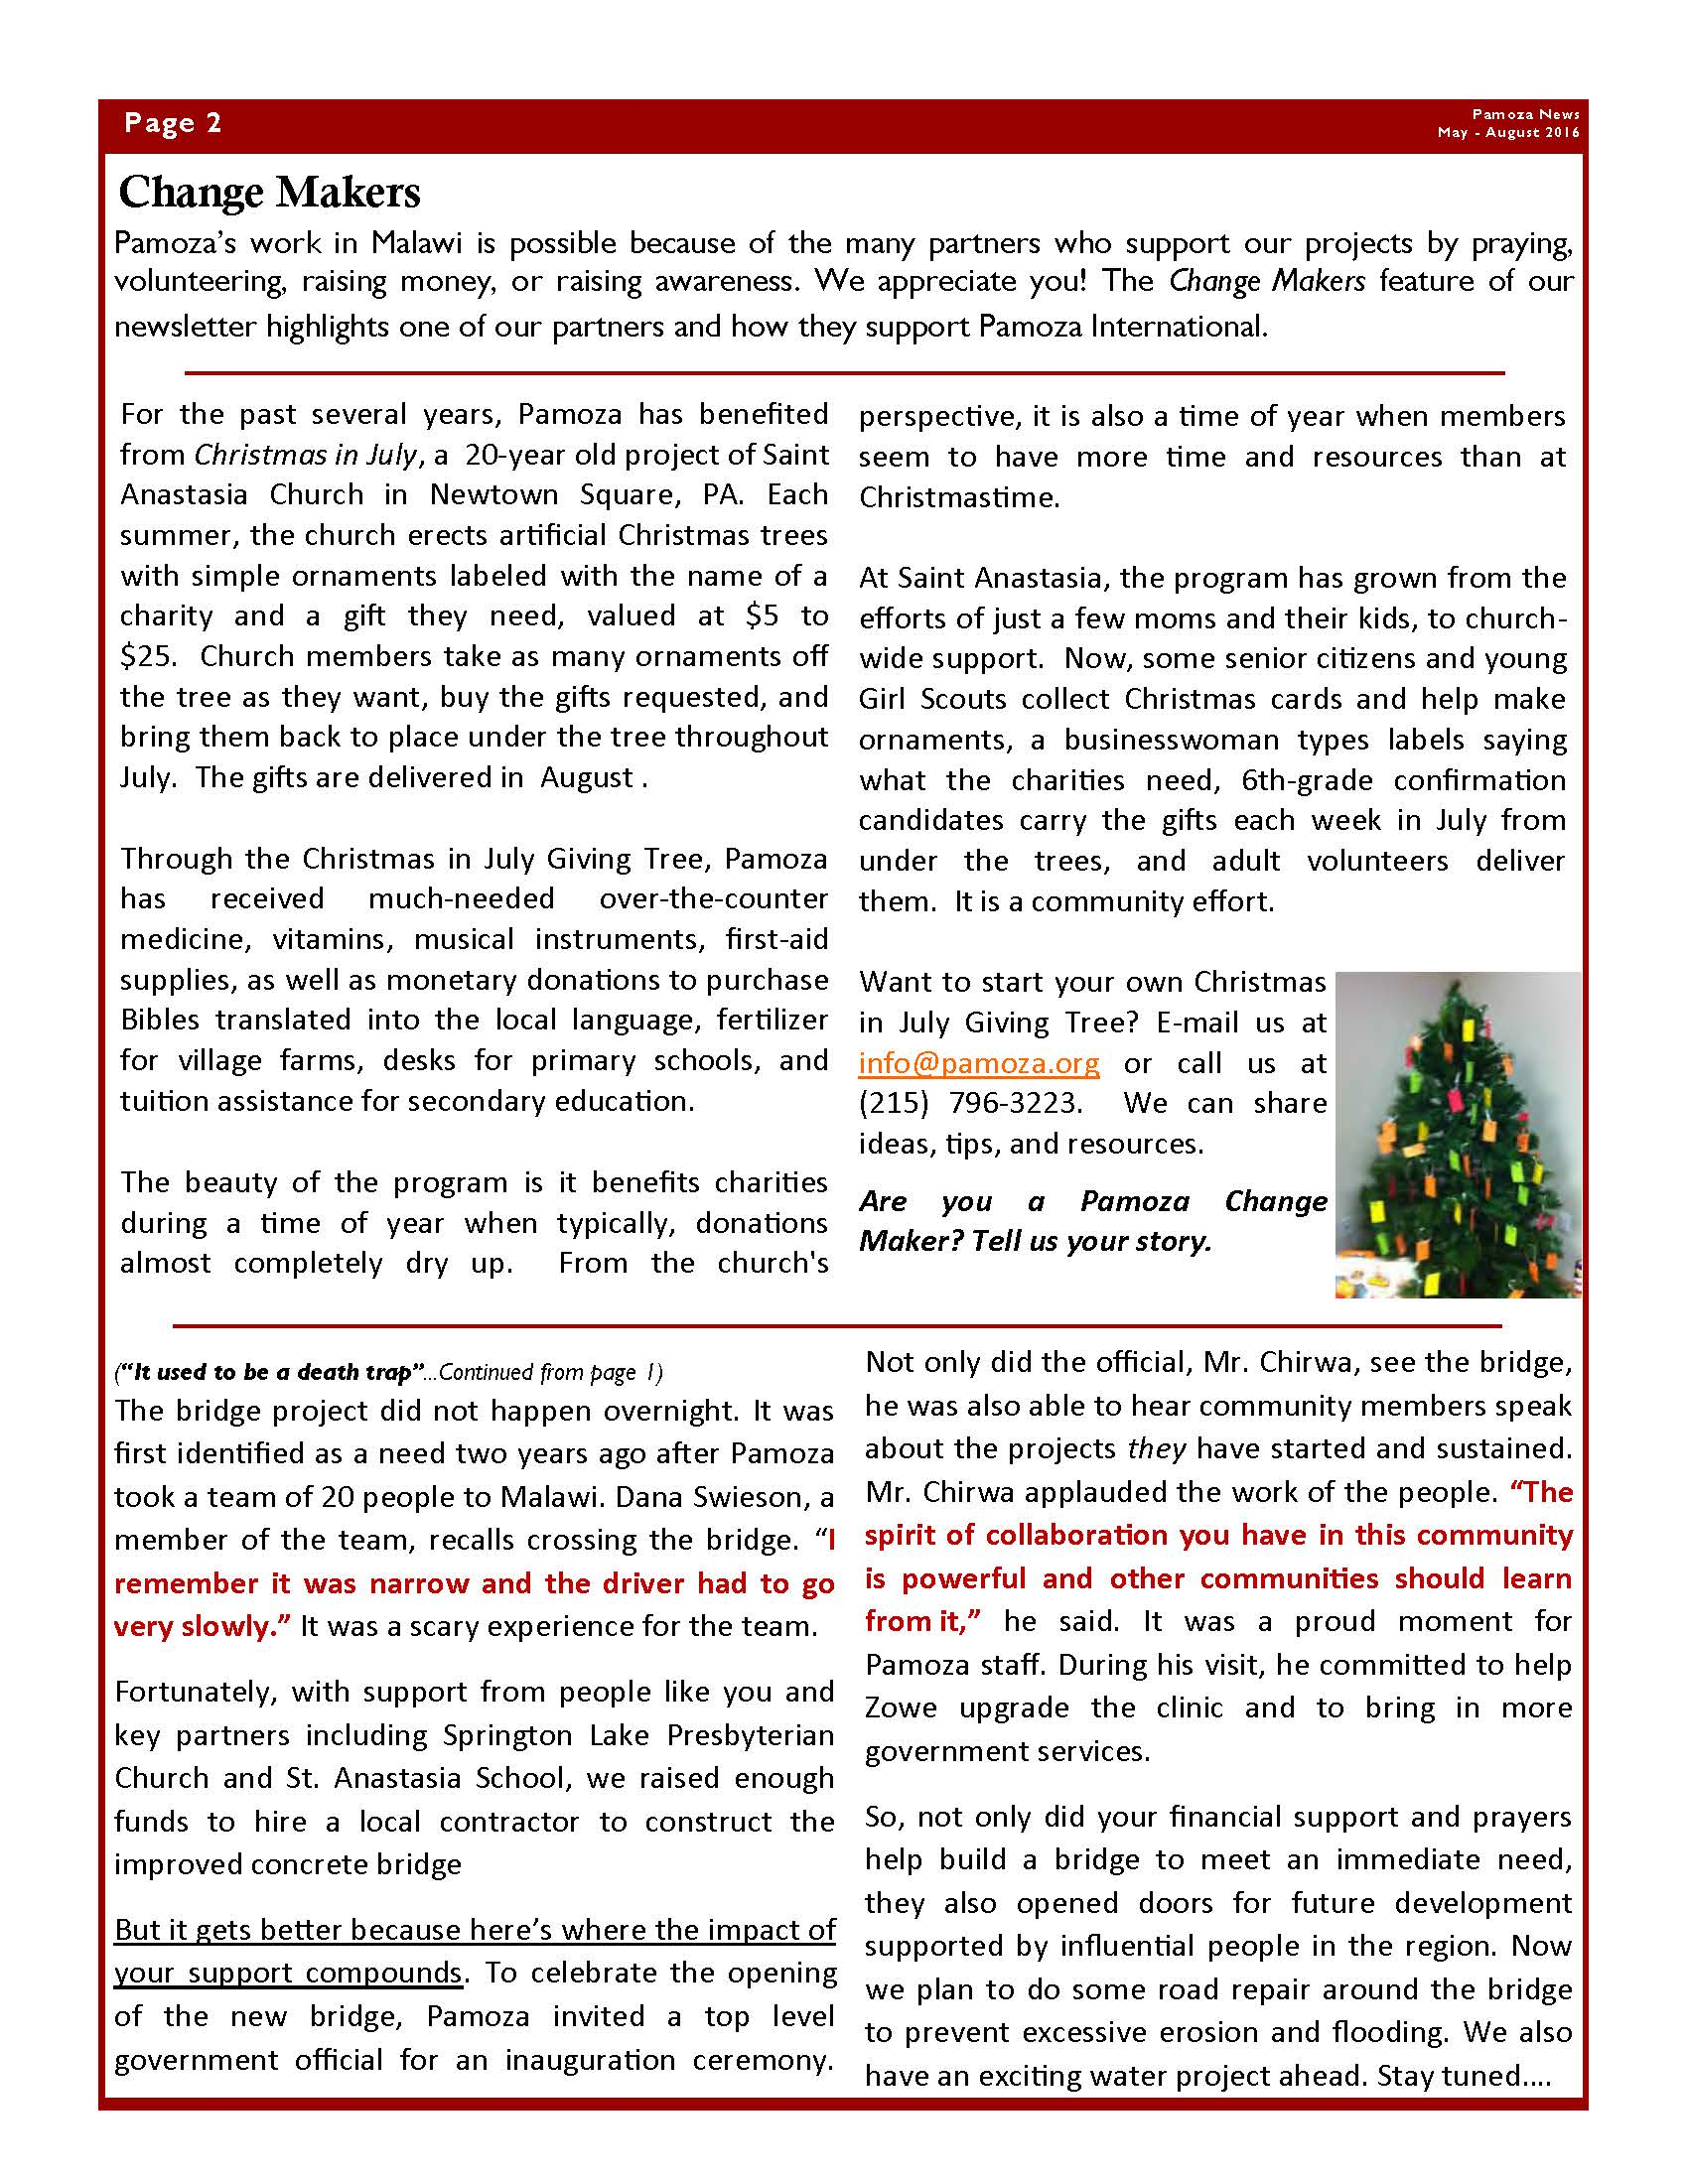 pamoza-news_may-august-16_page_2